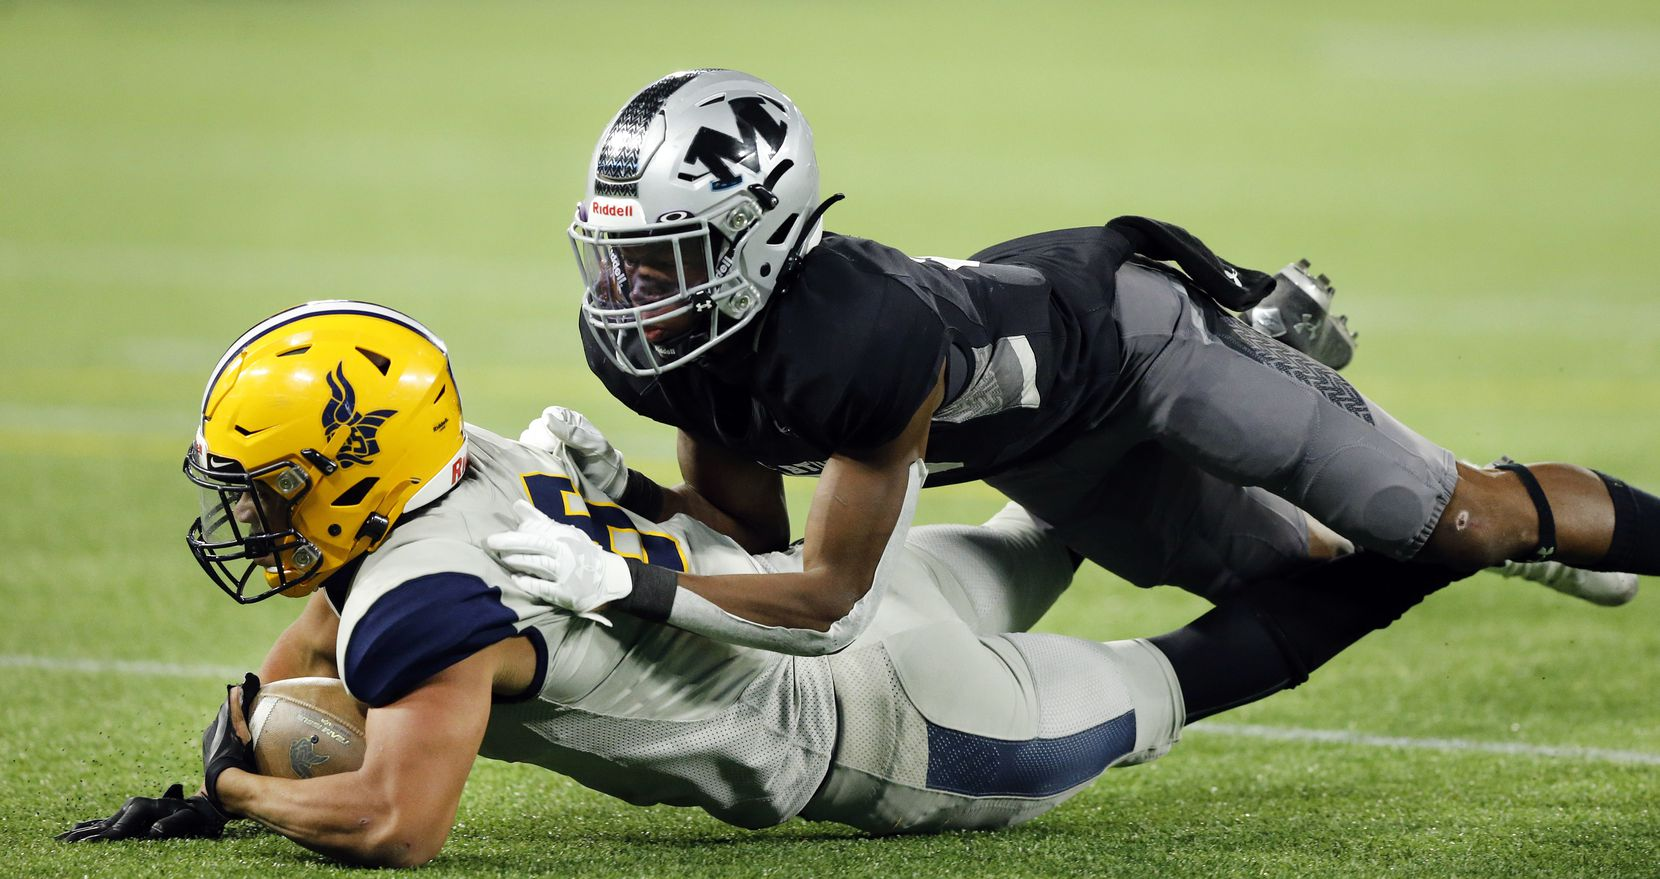 Arlington Lamar running back Anthony Williams (6) is stopped short of the goal line by Arlington Martin's Lenard Lemons (5) to end the first half at Globe Life Park in Arlington, Friday, October 30, 2020.